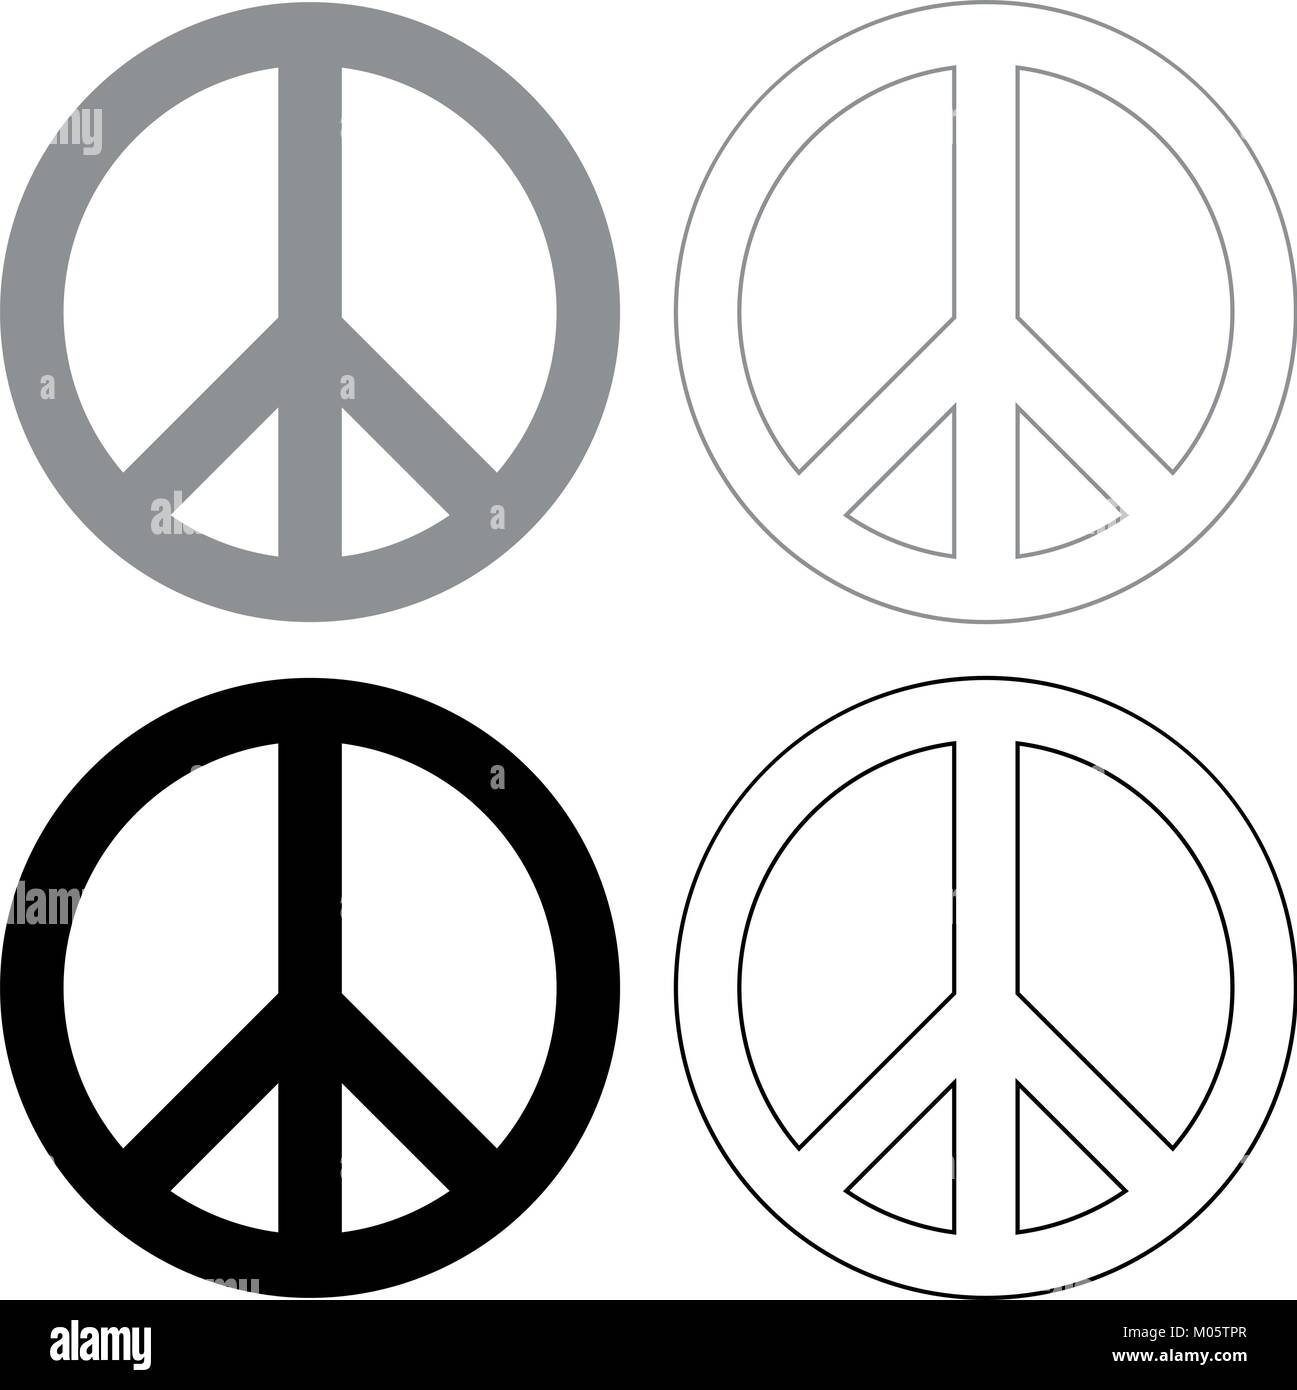 Peace sign stock vector images alamy world peace sign symbol icon illustration grey and black color fill and outline biocorpaavc Choice Image